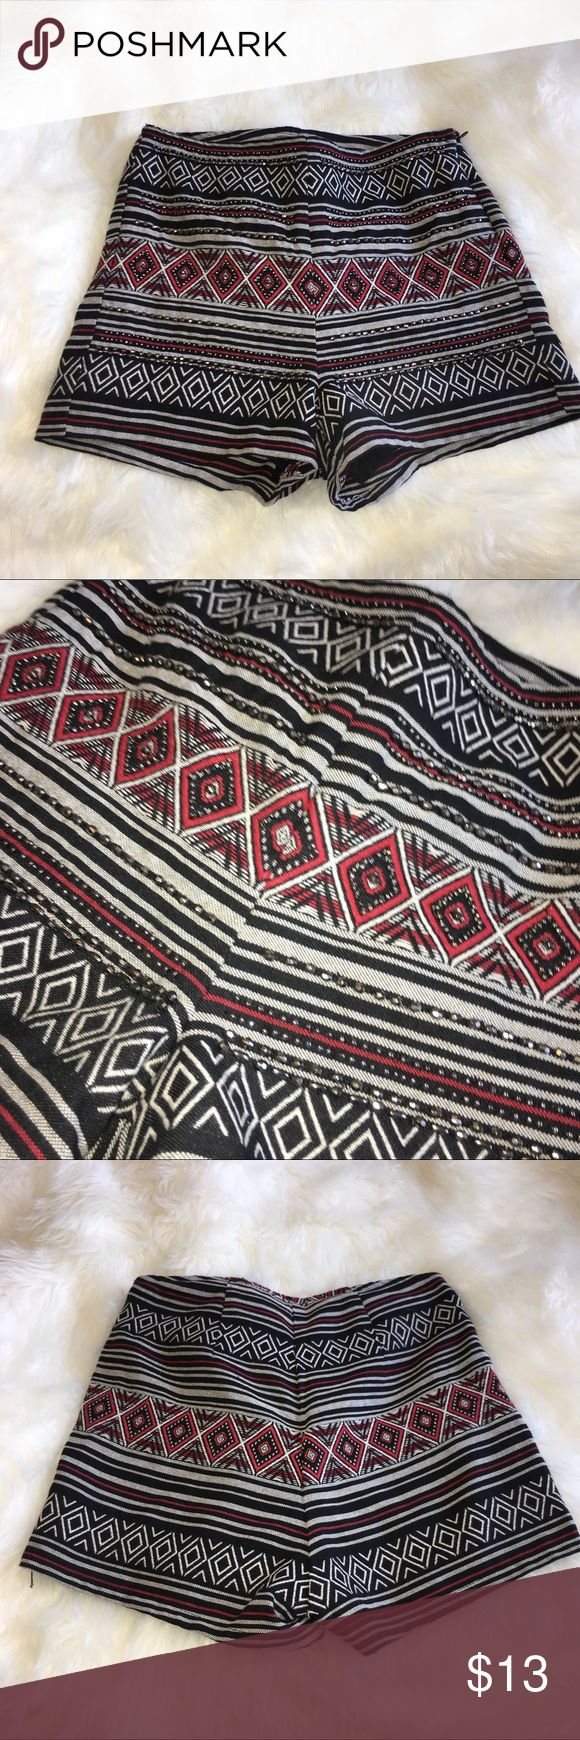 Divided H&M highwaisted Aztec print shorts size 4 Aztec red white and black highwaisted shorts from Divided H&M. Size 4. Has beading on front. Side zip. Good condition. H&M Shorts